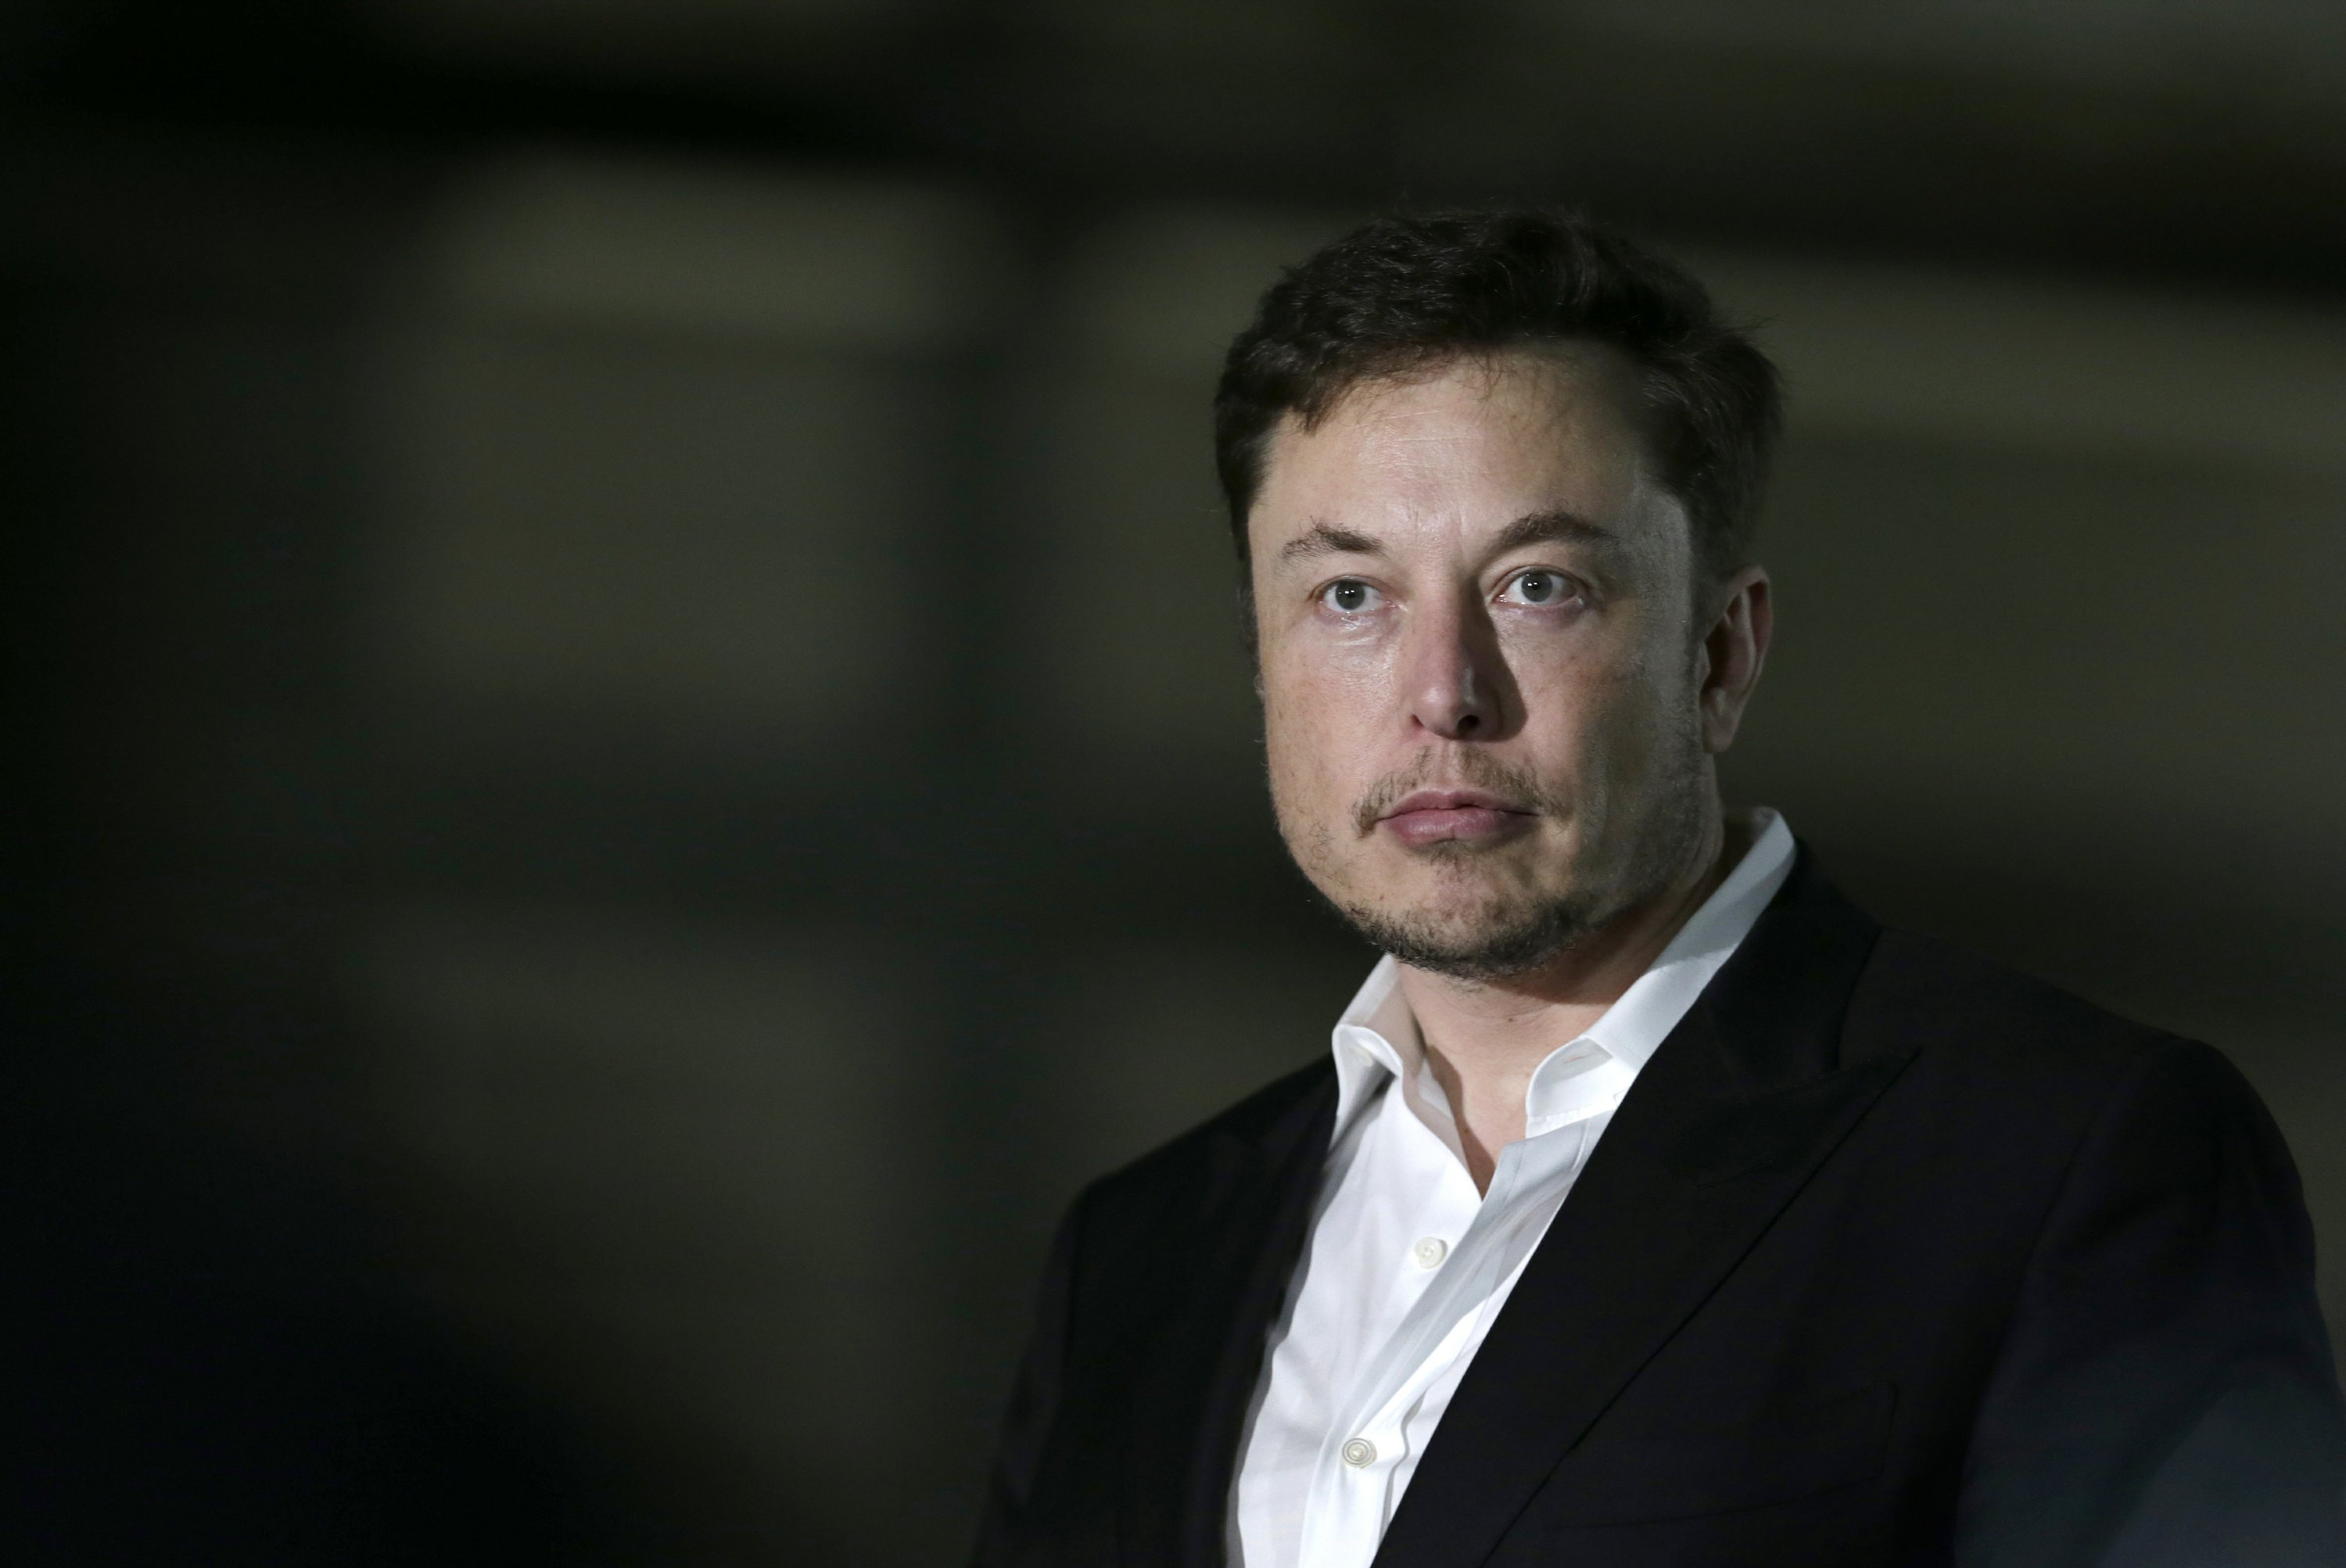 Another day at Tesla: Execs depart, Musk invites controversy